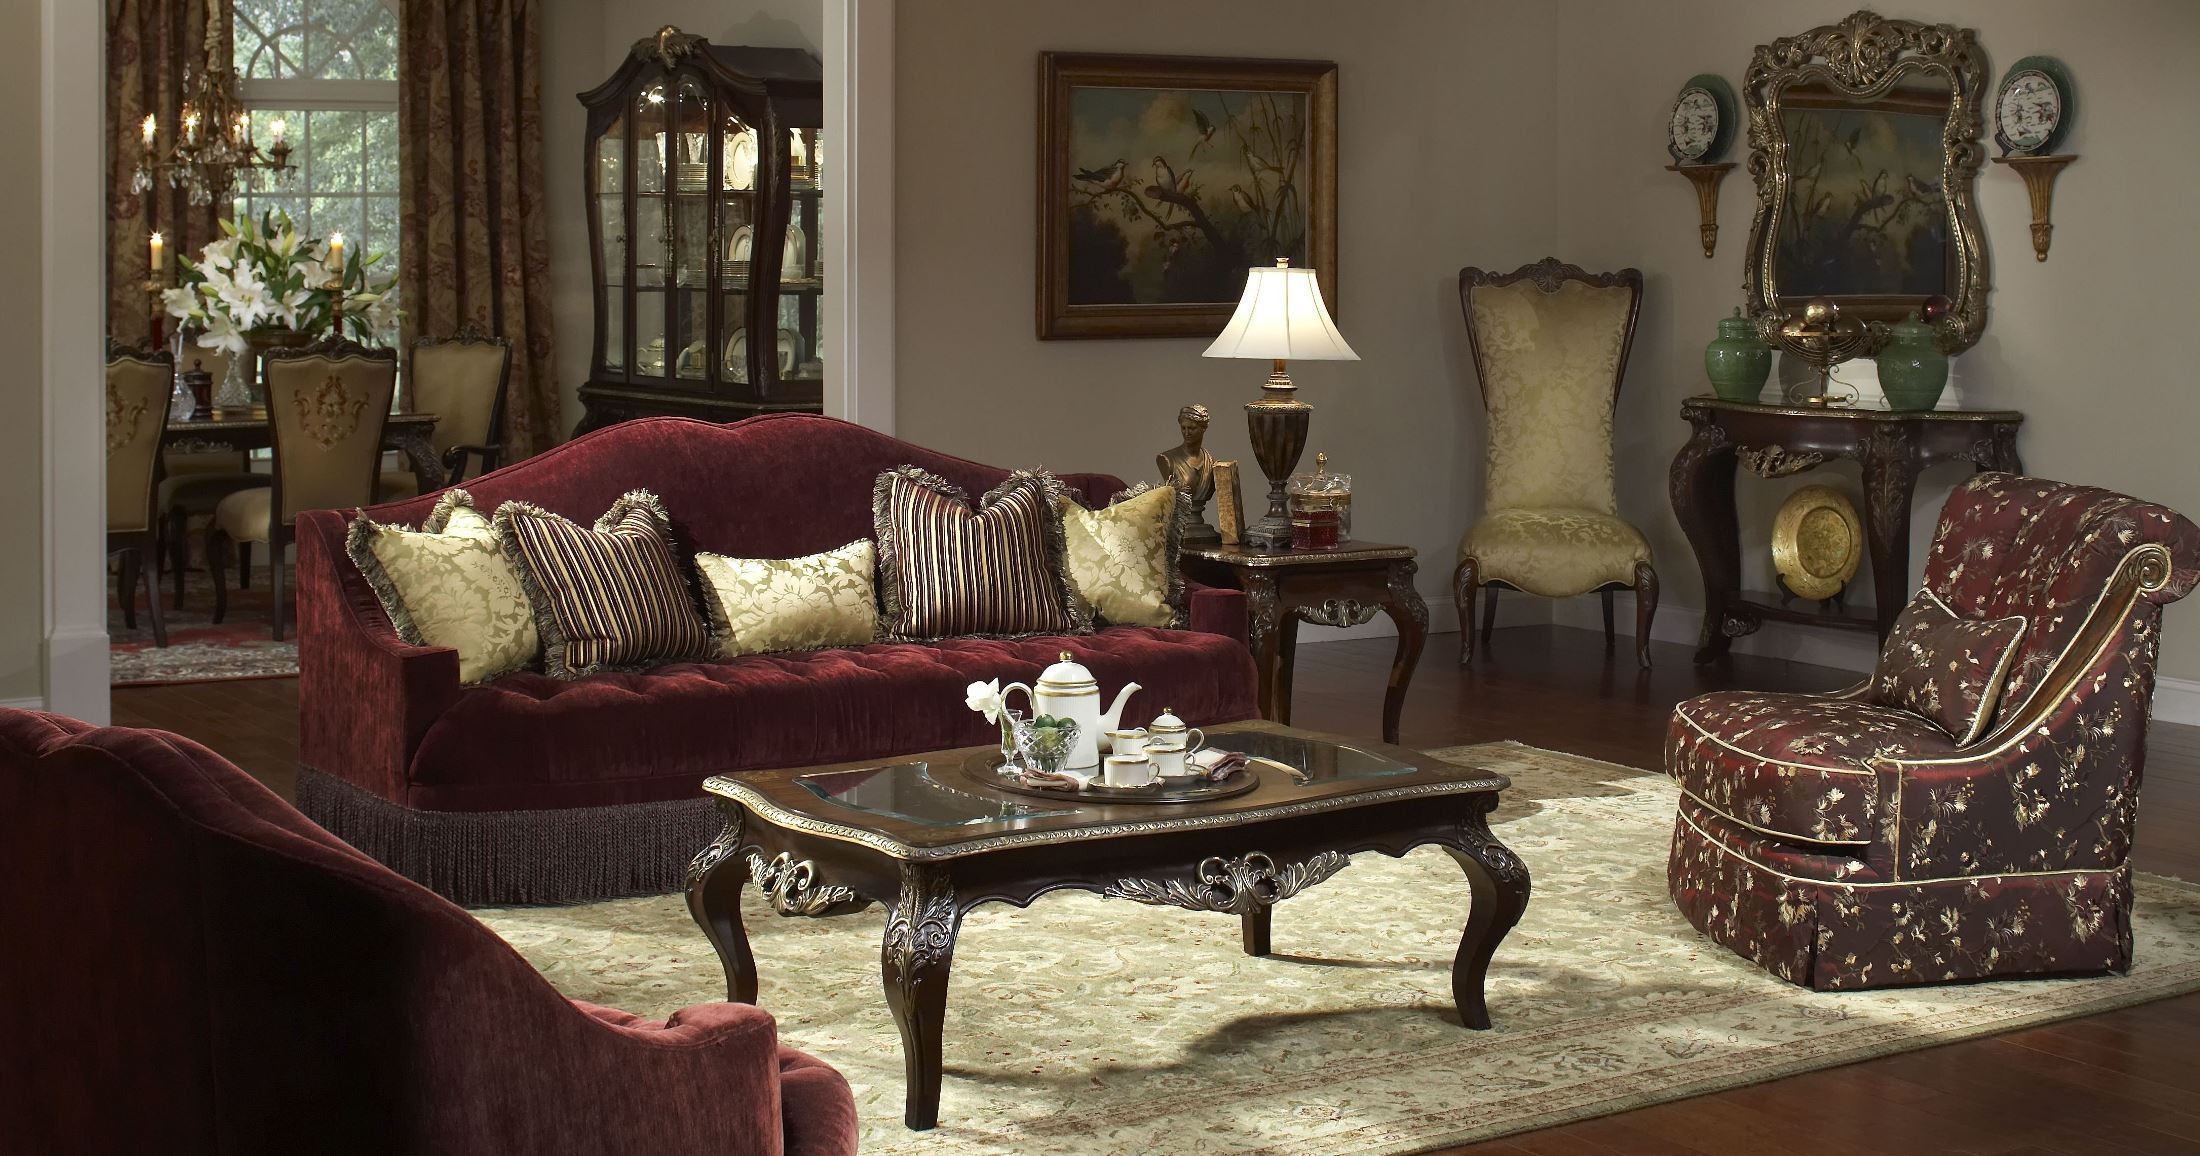 Imperial Court Eggplant Living Room Set from Aico 79815  : imperialcourt studio lr alt17 from colemanfurniture.com size 2200 x 1156 jpeg 579kB